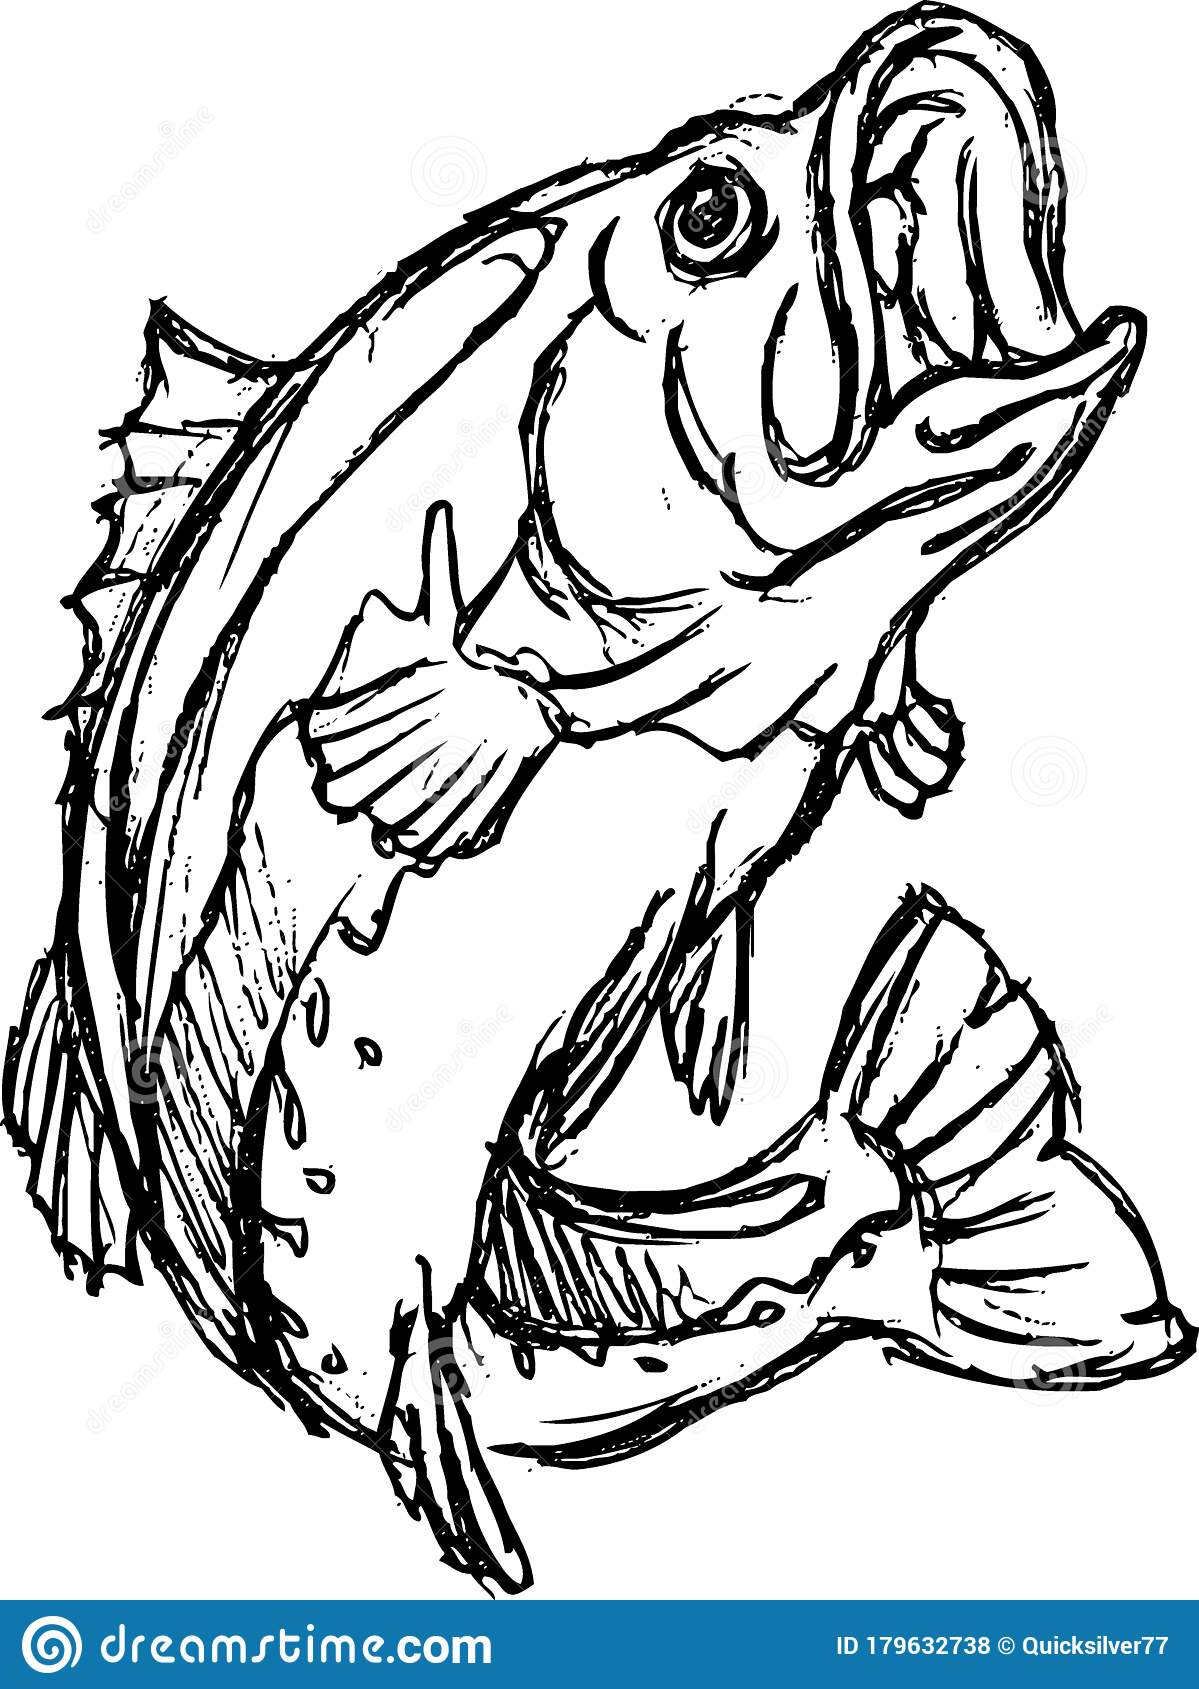 Bass Fish Sketch Large Open Mouth Stock Vector Illustration Of Saltwater Drawing 179632738